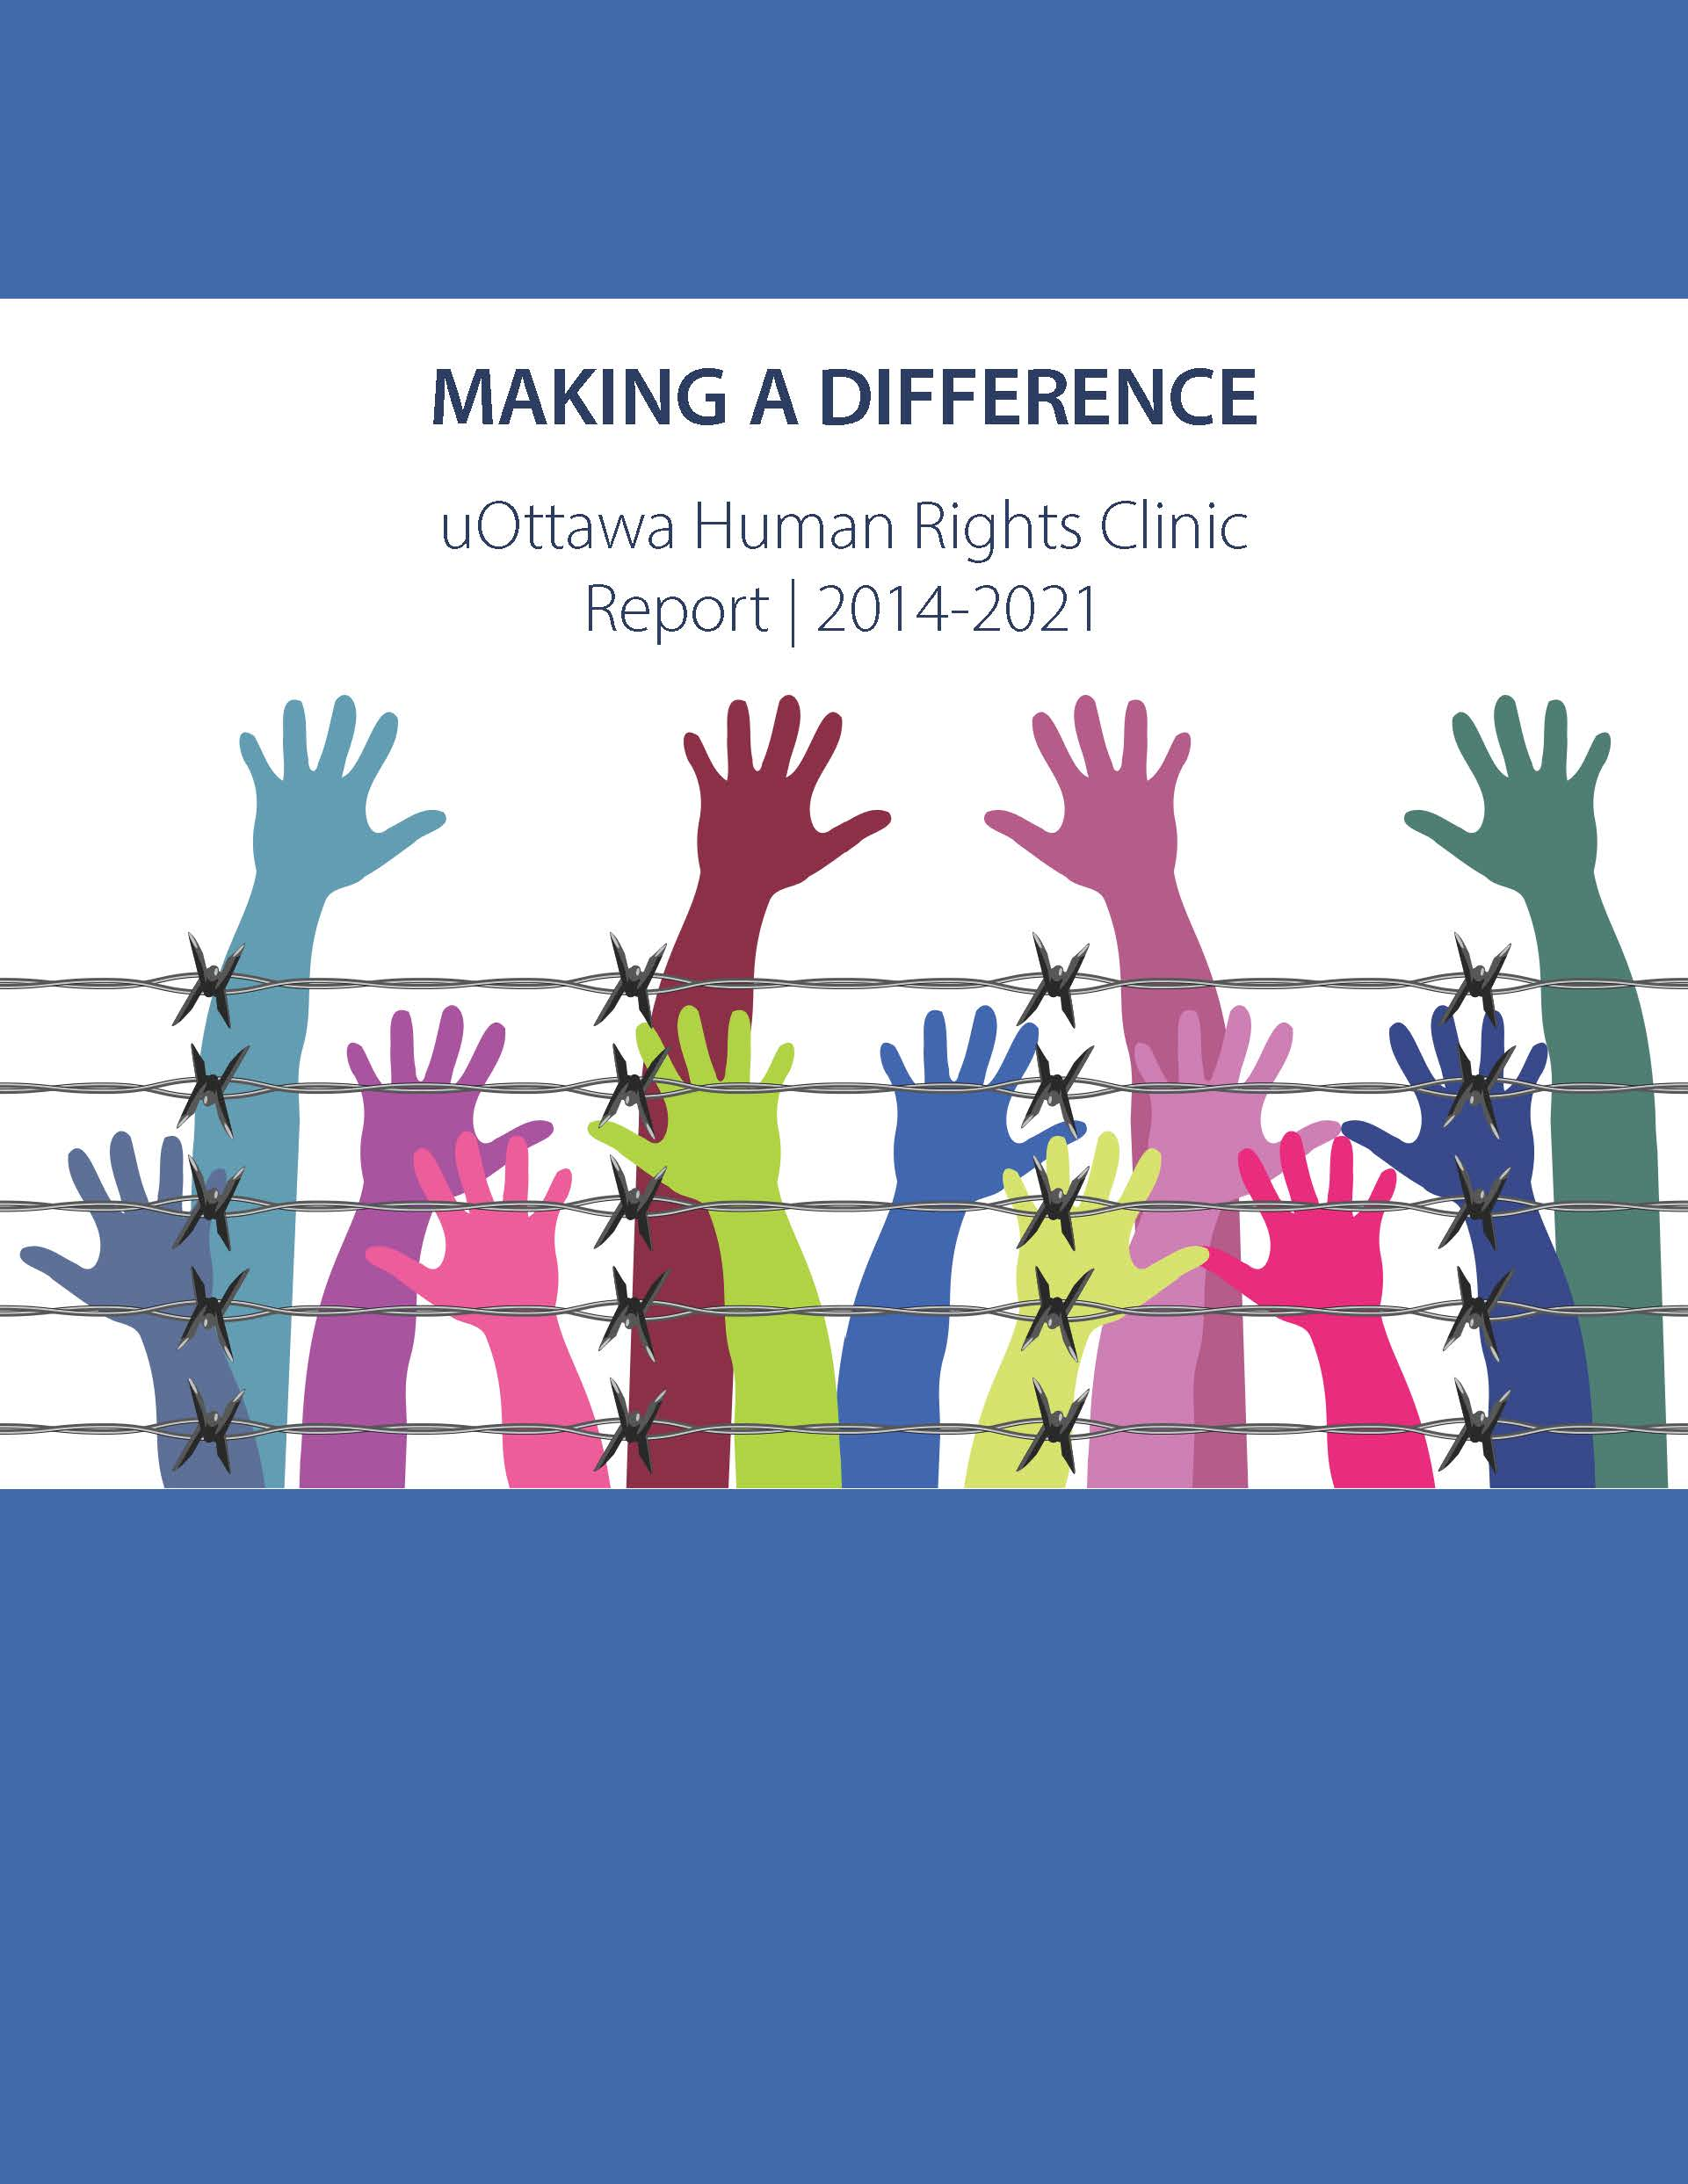 Cover of the Human Rights Clinic's report 2014-2021, blue and white with colorful raised hands behind barbed wires.